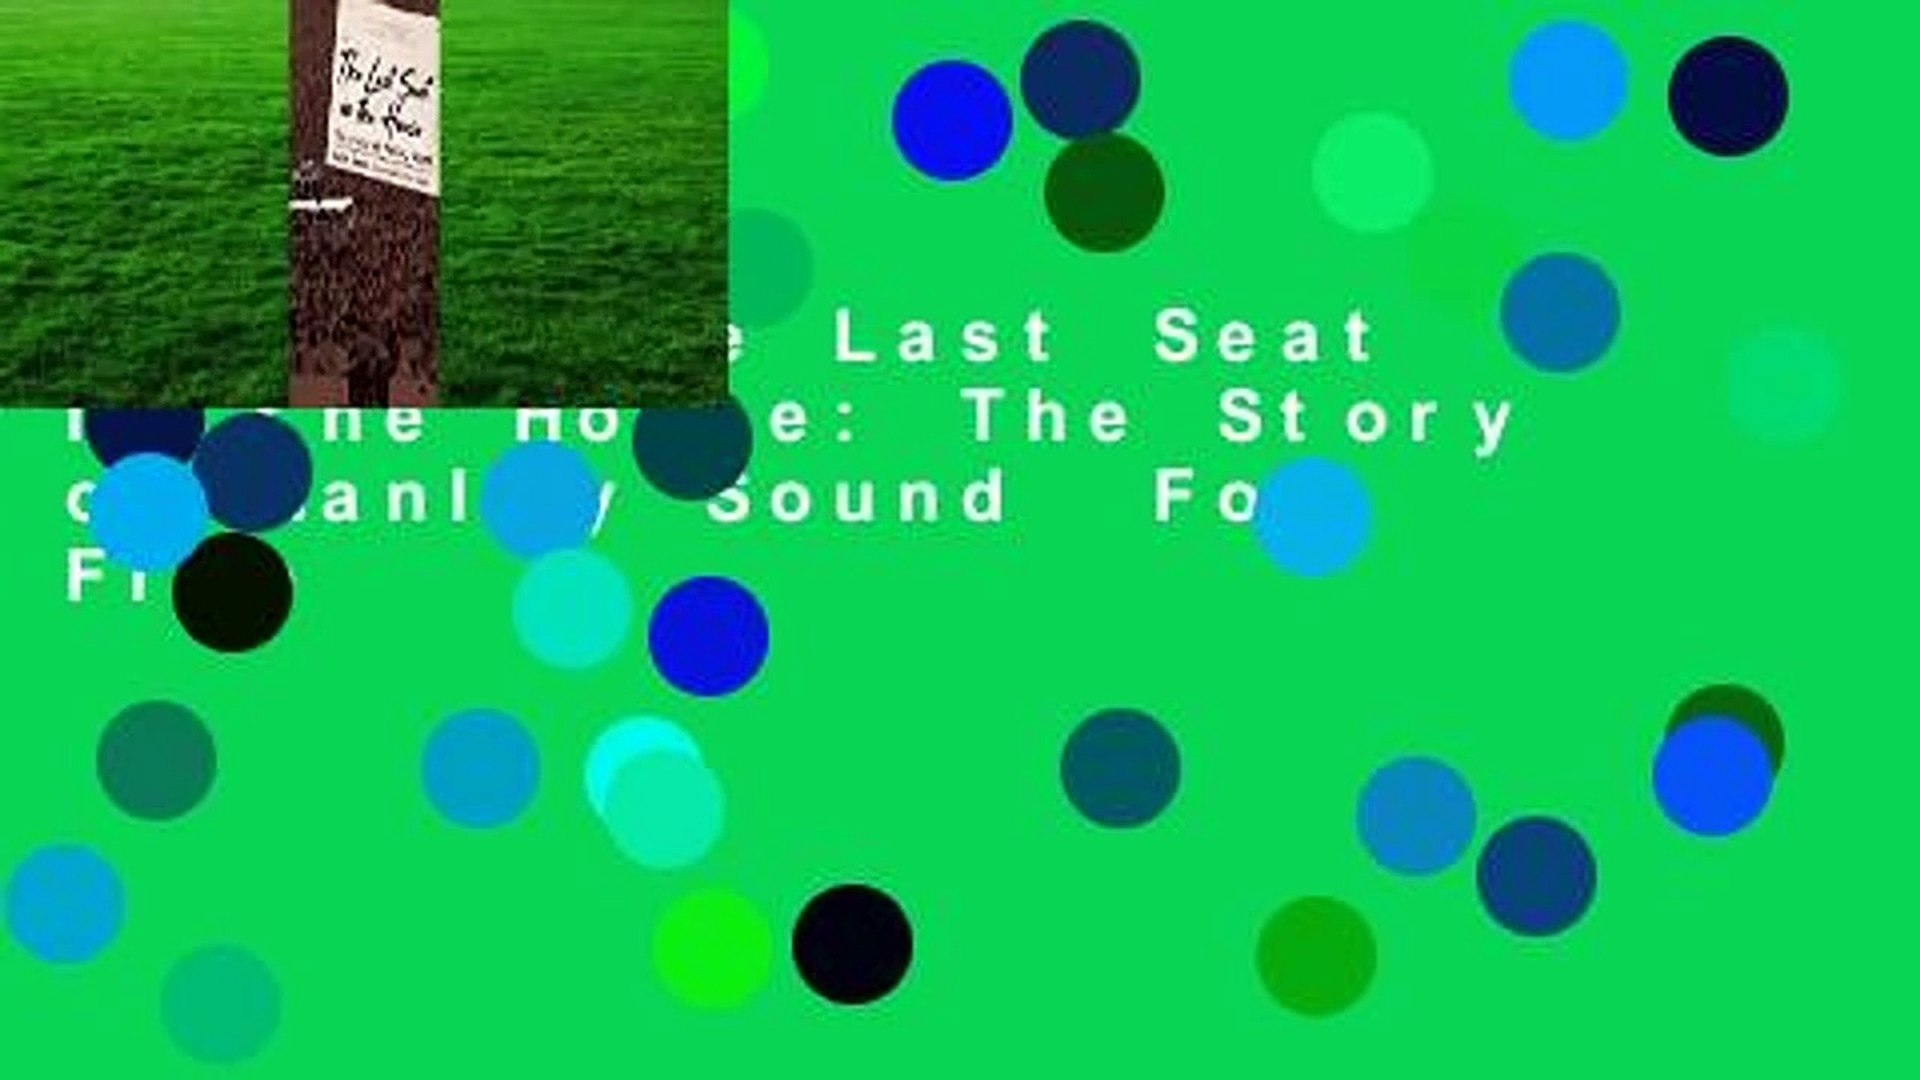 [Read] The Last Seat in the House: The Story of Hanley Sound  For Free